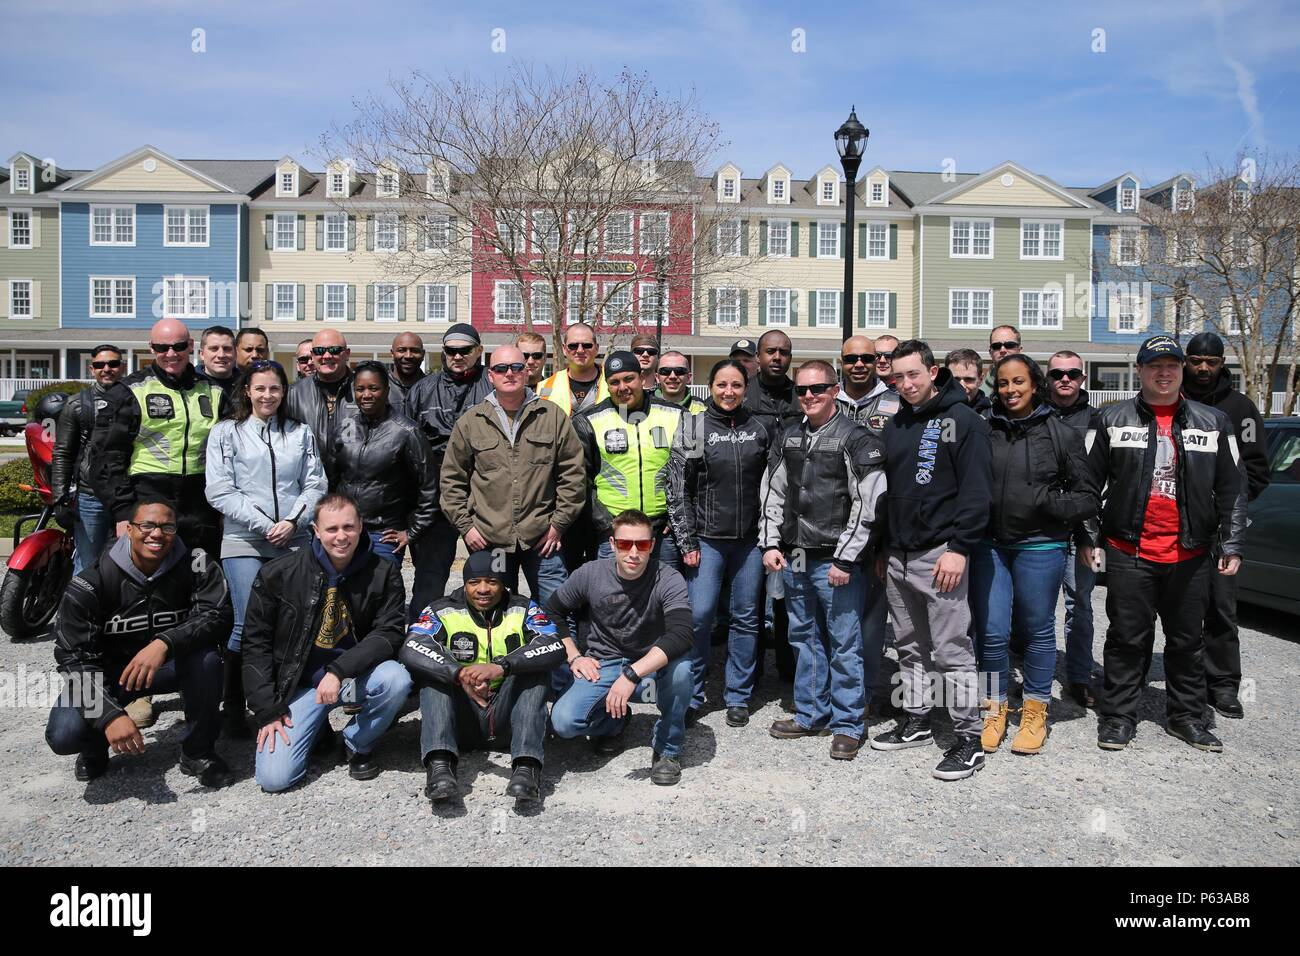 NEWPORT NEWS, Va. (Apr 15, 2016) -- Pre-Commissioning Unit Gerald R. Ford (CVN 78) Sailors pose  for a group photo upon the conclusion of their Annual Spring Ride.  Ford is the first of a new class of aircraft carriers currently under construction by Huntington Ingalls Newport News Shipbuilding.  (U.S. Navy photo by Mass Communication Specialist Seaman Apprentice Connor Loessin/Released) - Stock Image